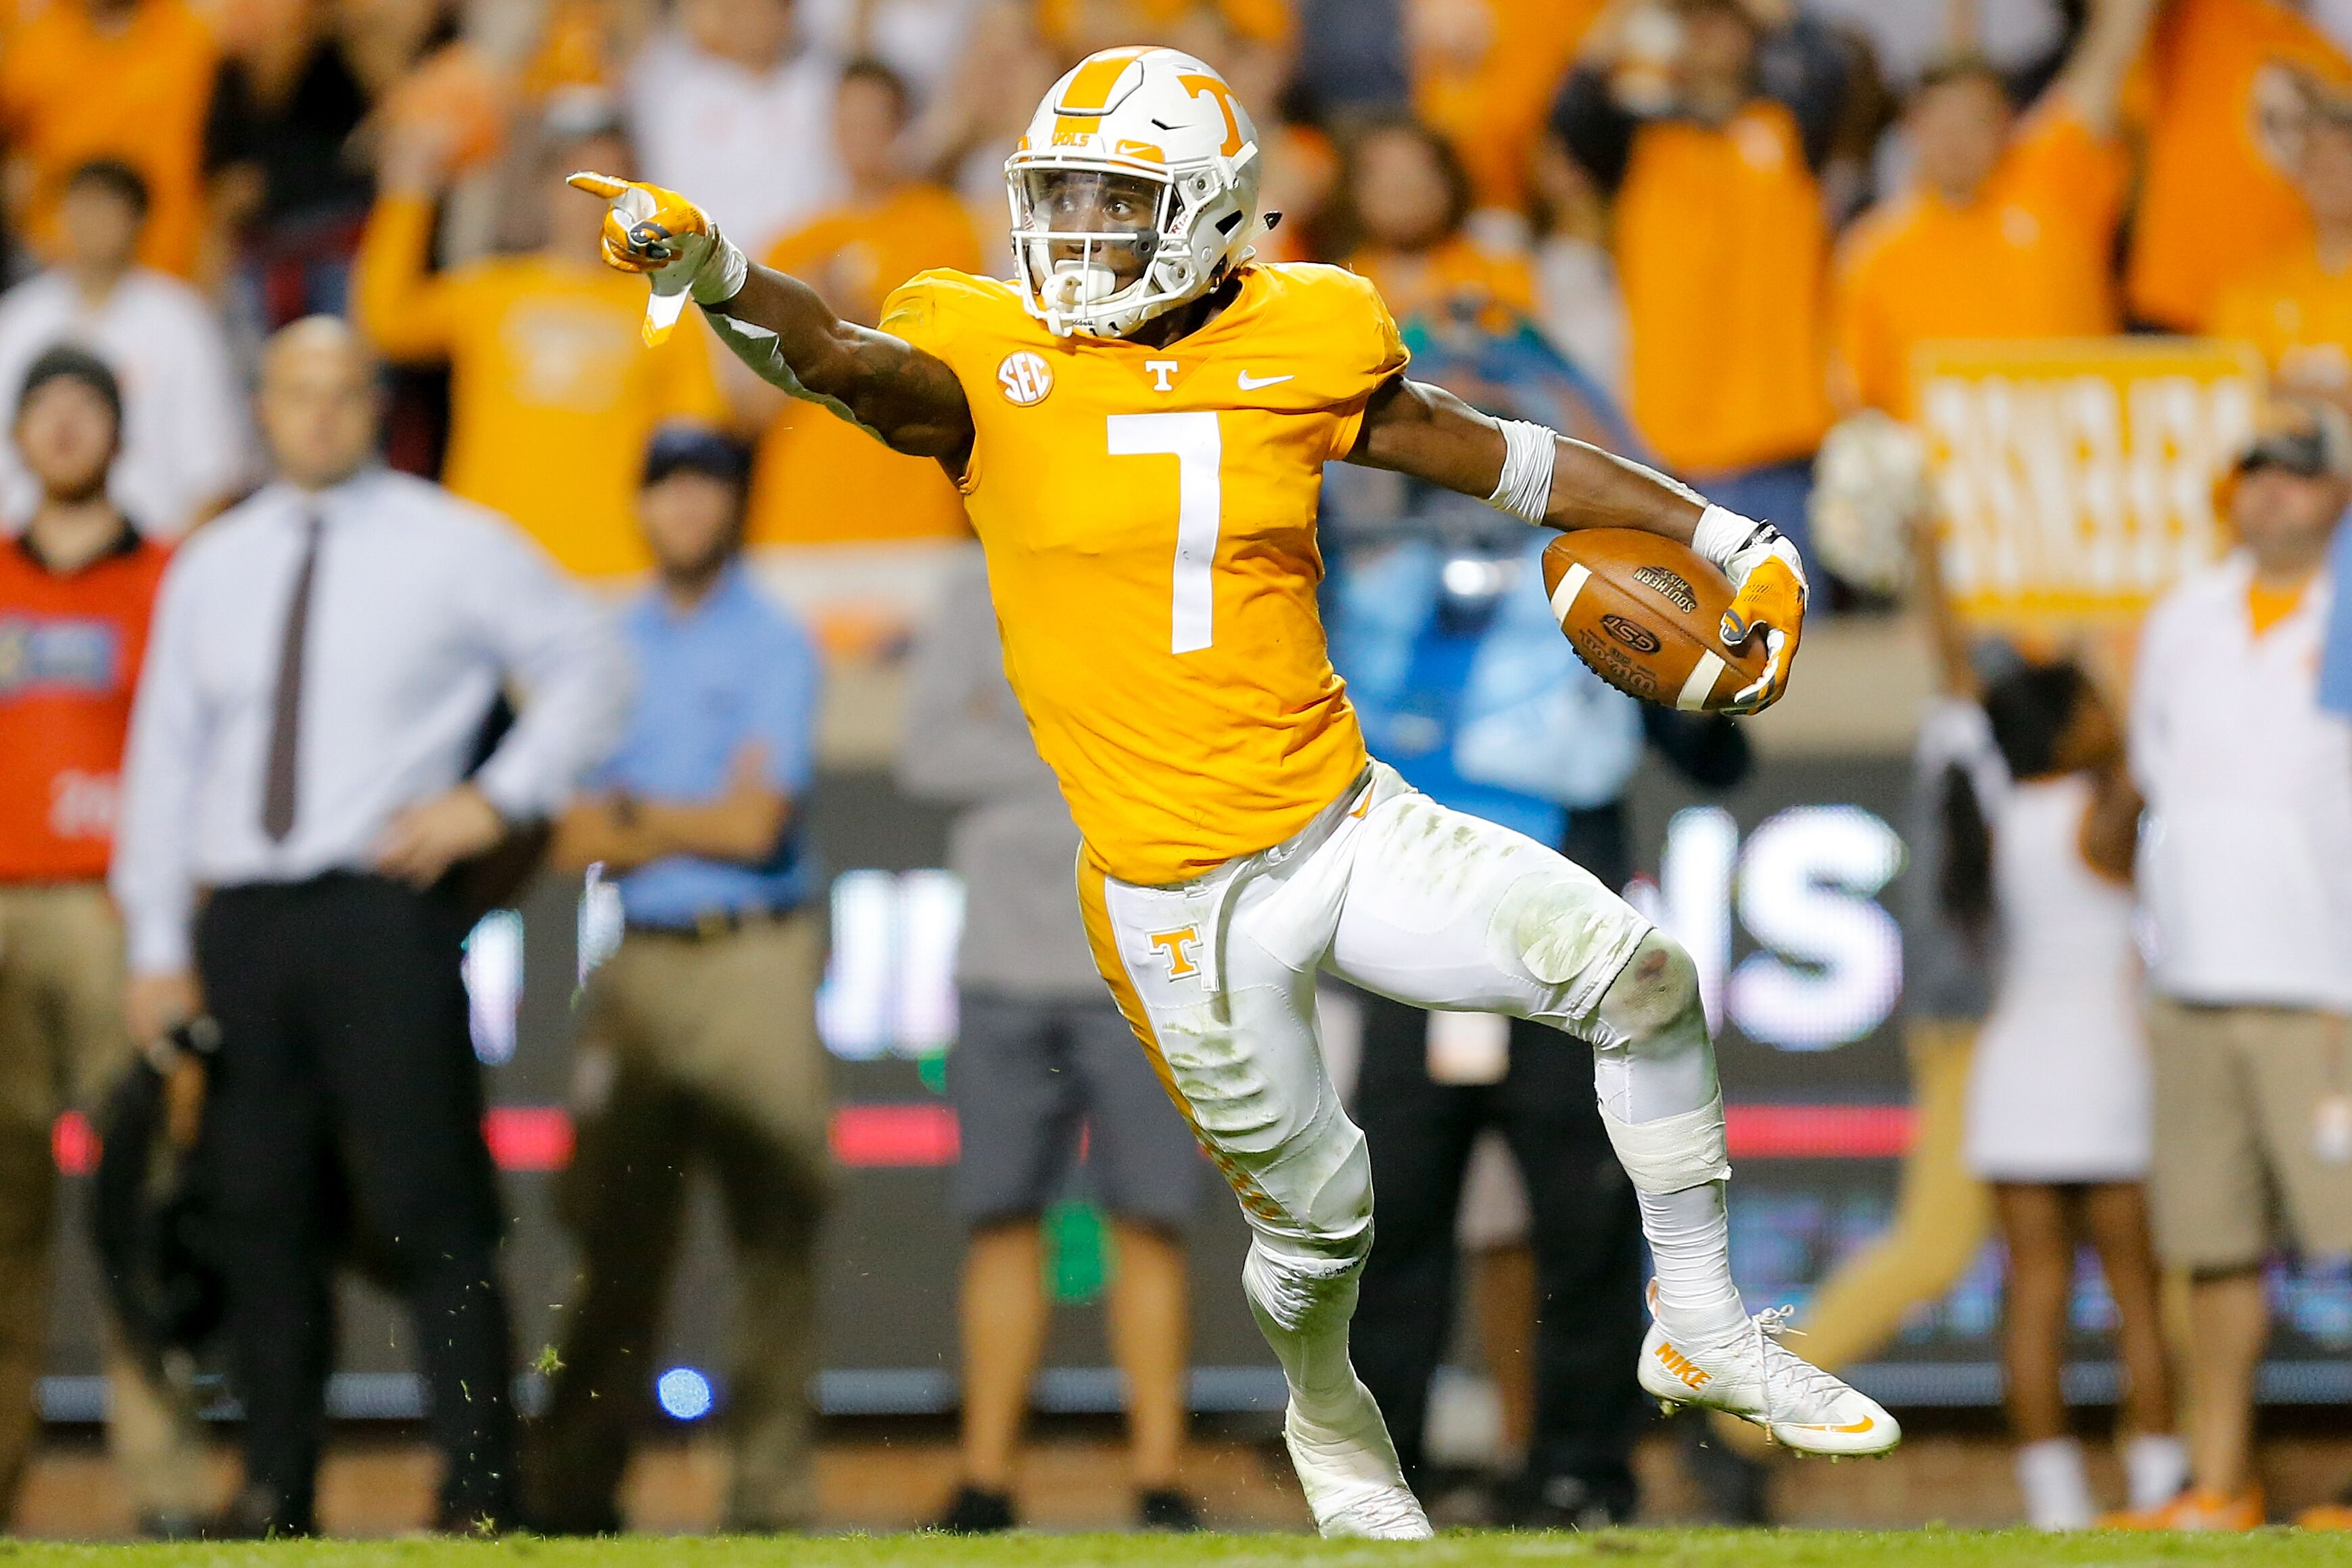 870320444-southern-miss-v-tennessee.jpg